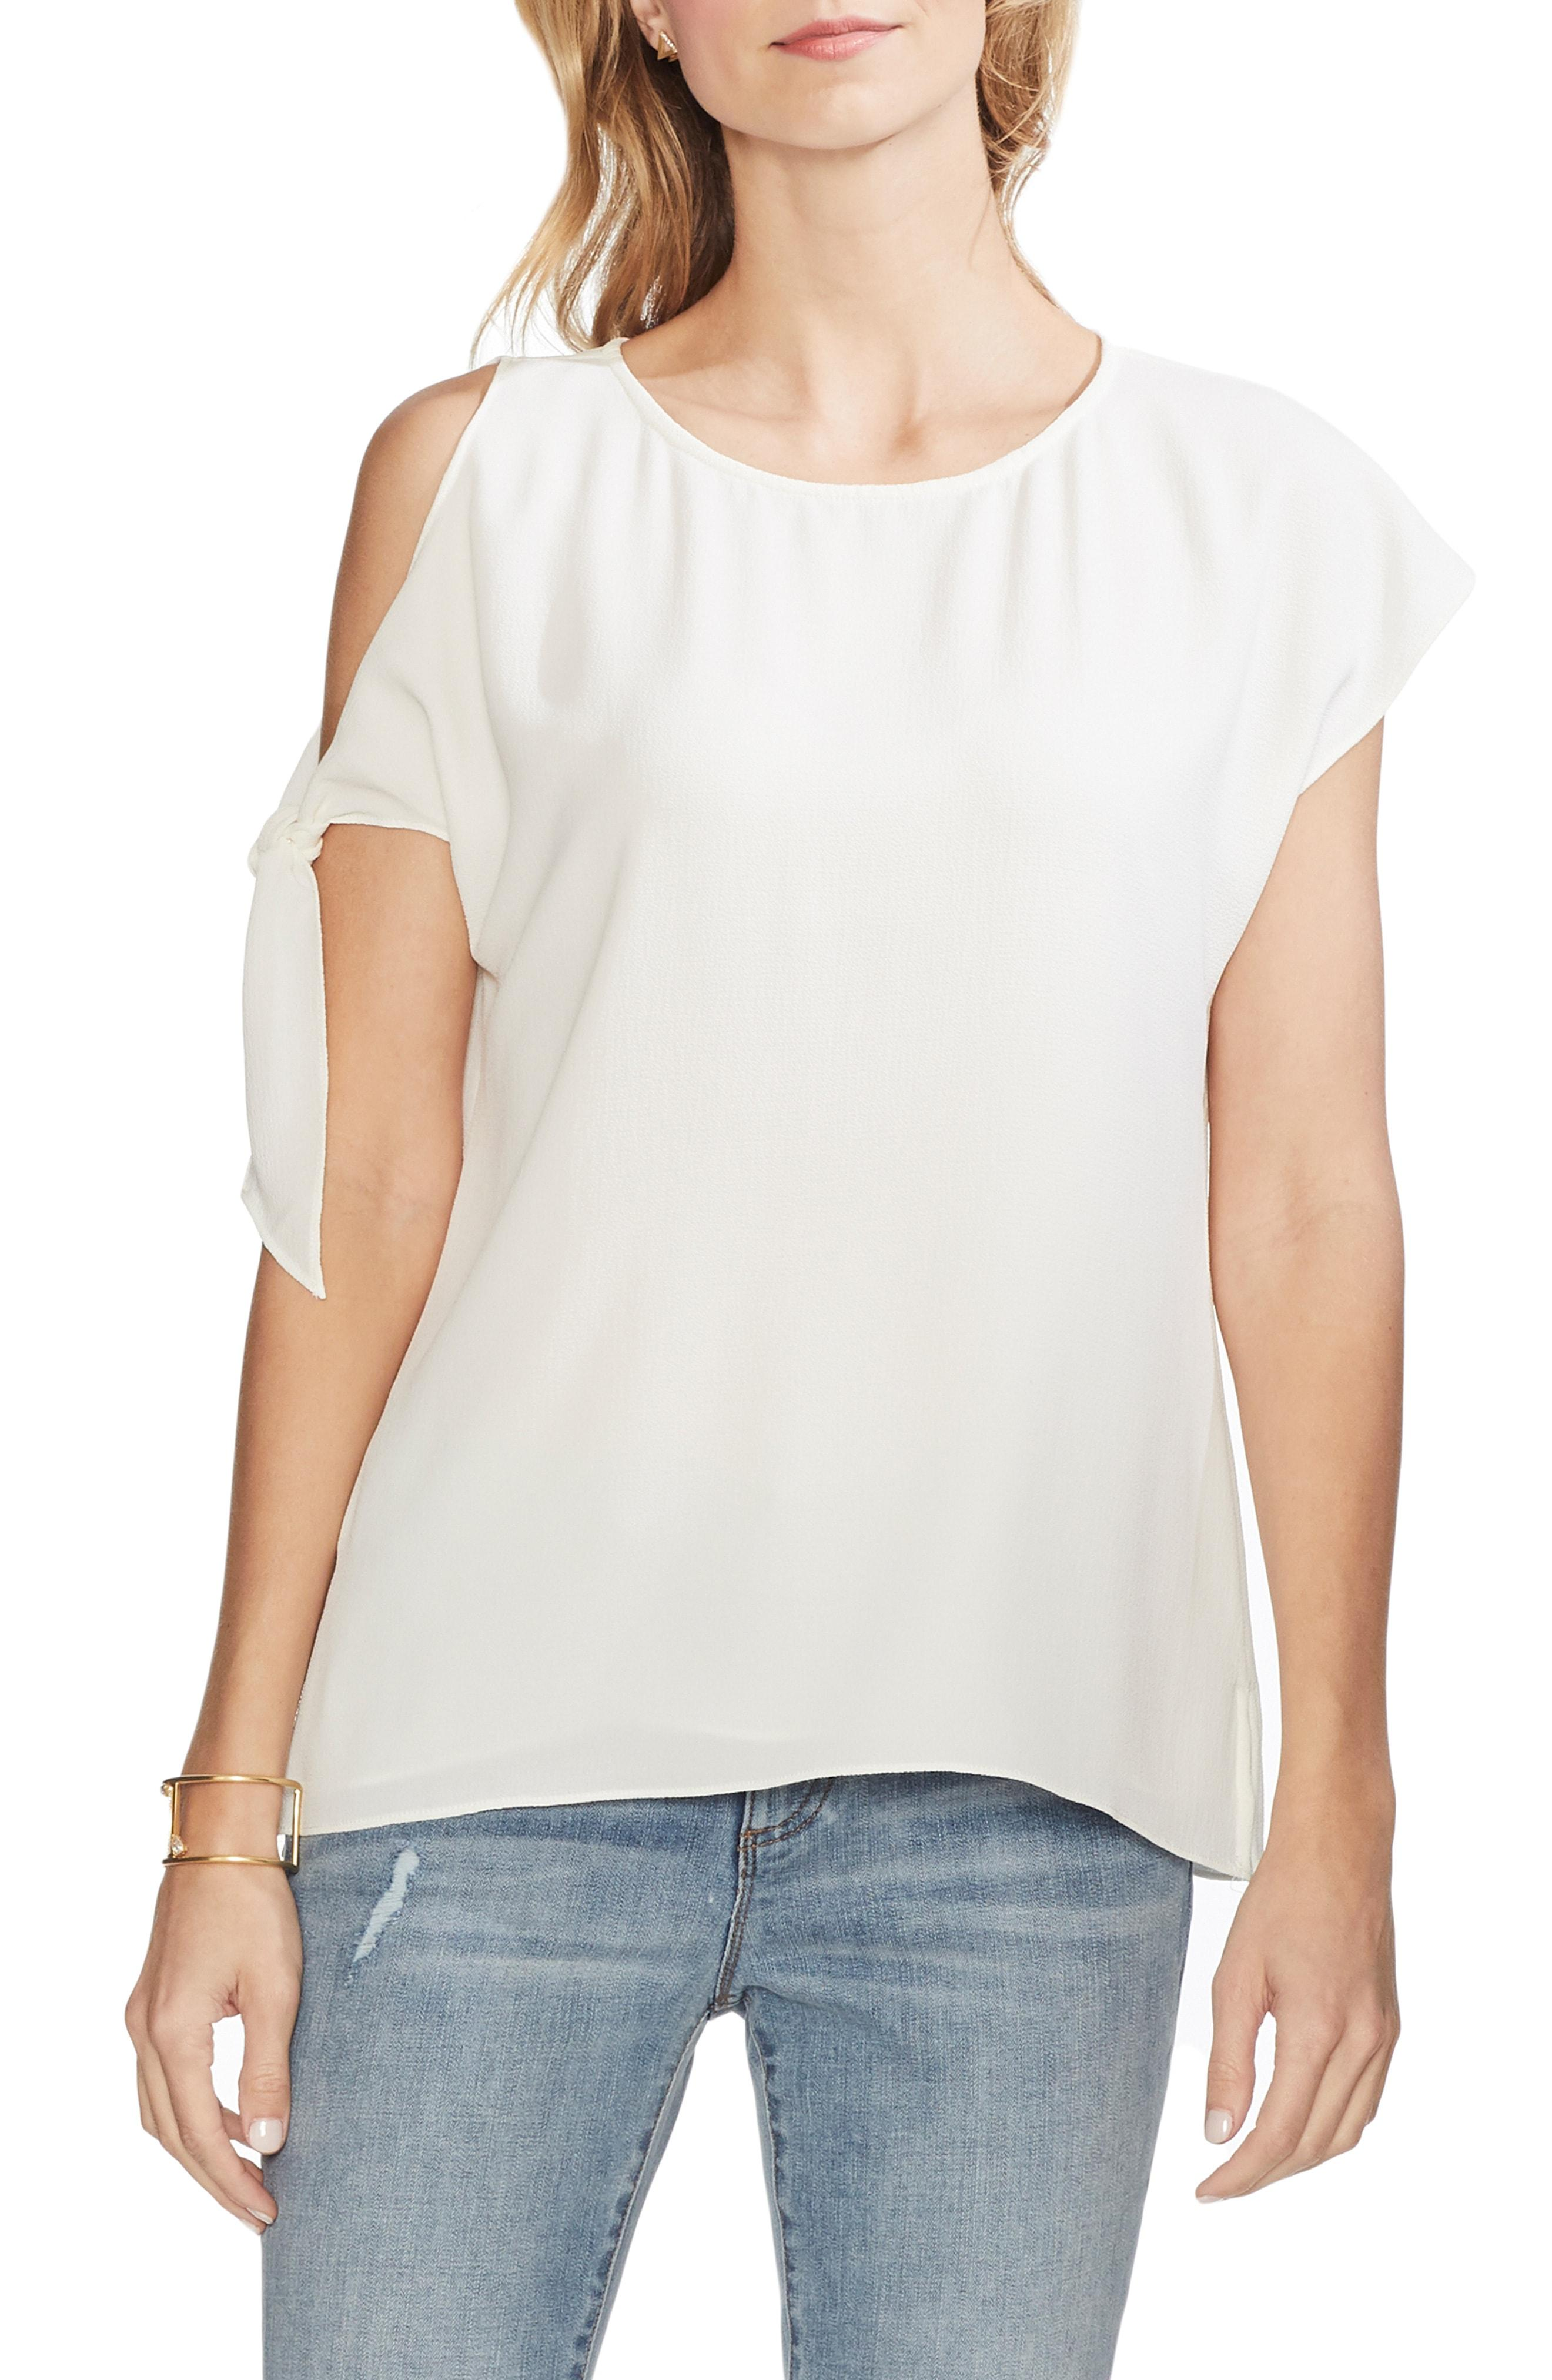 938c0d0f53df57 Lyst - Vince Camuto Single Cold Shoulder Tie Sleeve Top in White